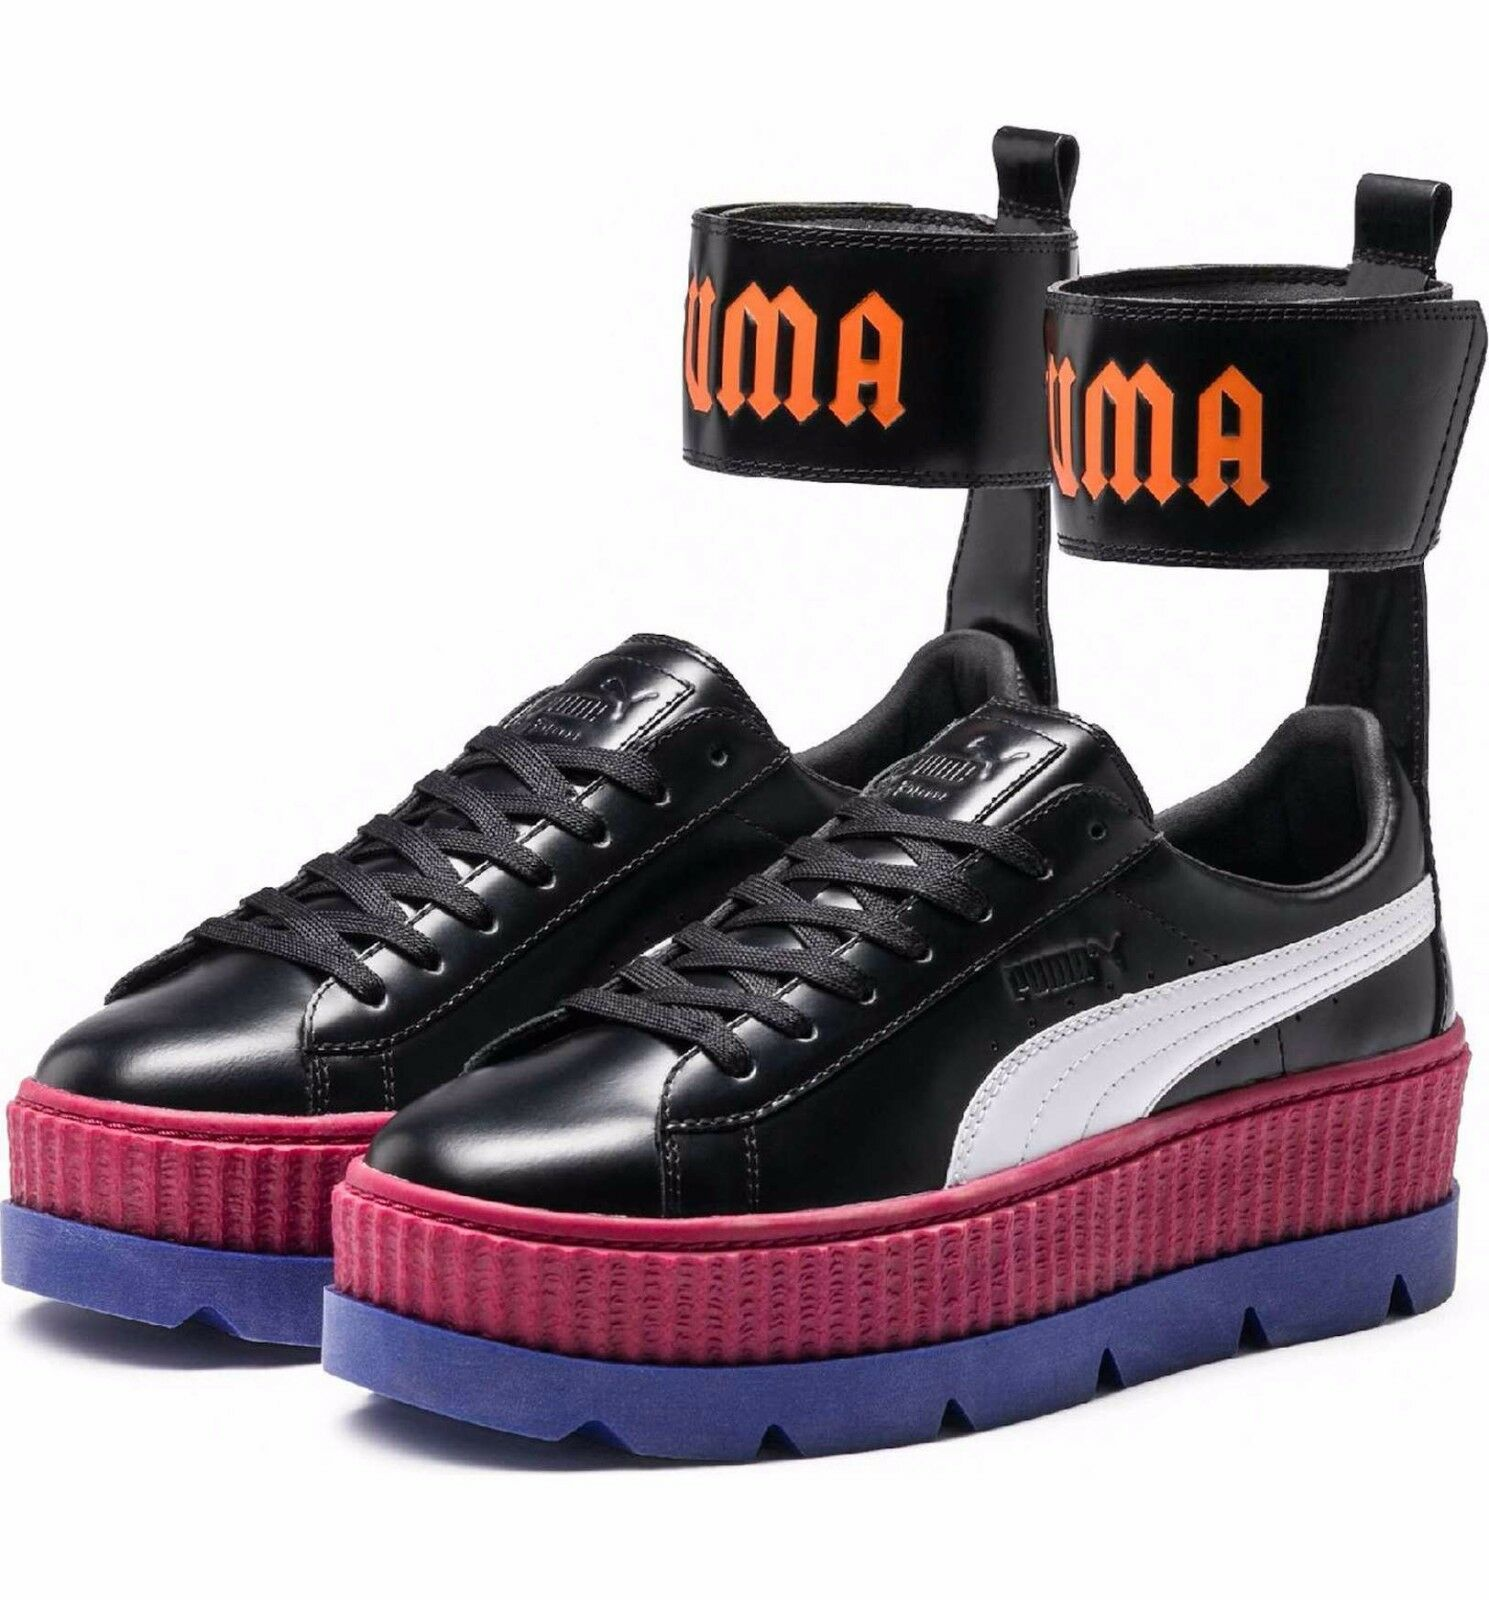 official photos 5c519 73e5f FENTY PUMA by Rihanna Ankle Strap Creeper Sneaker Black Red White Blue 5.5  NEW